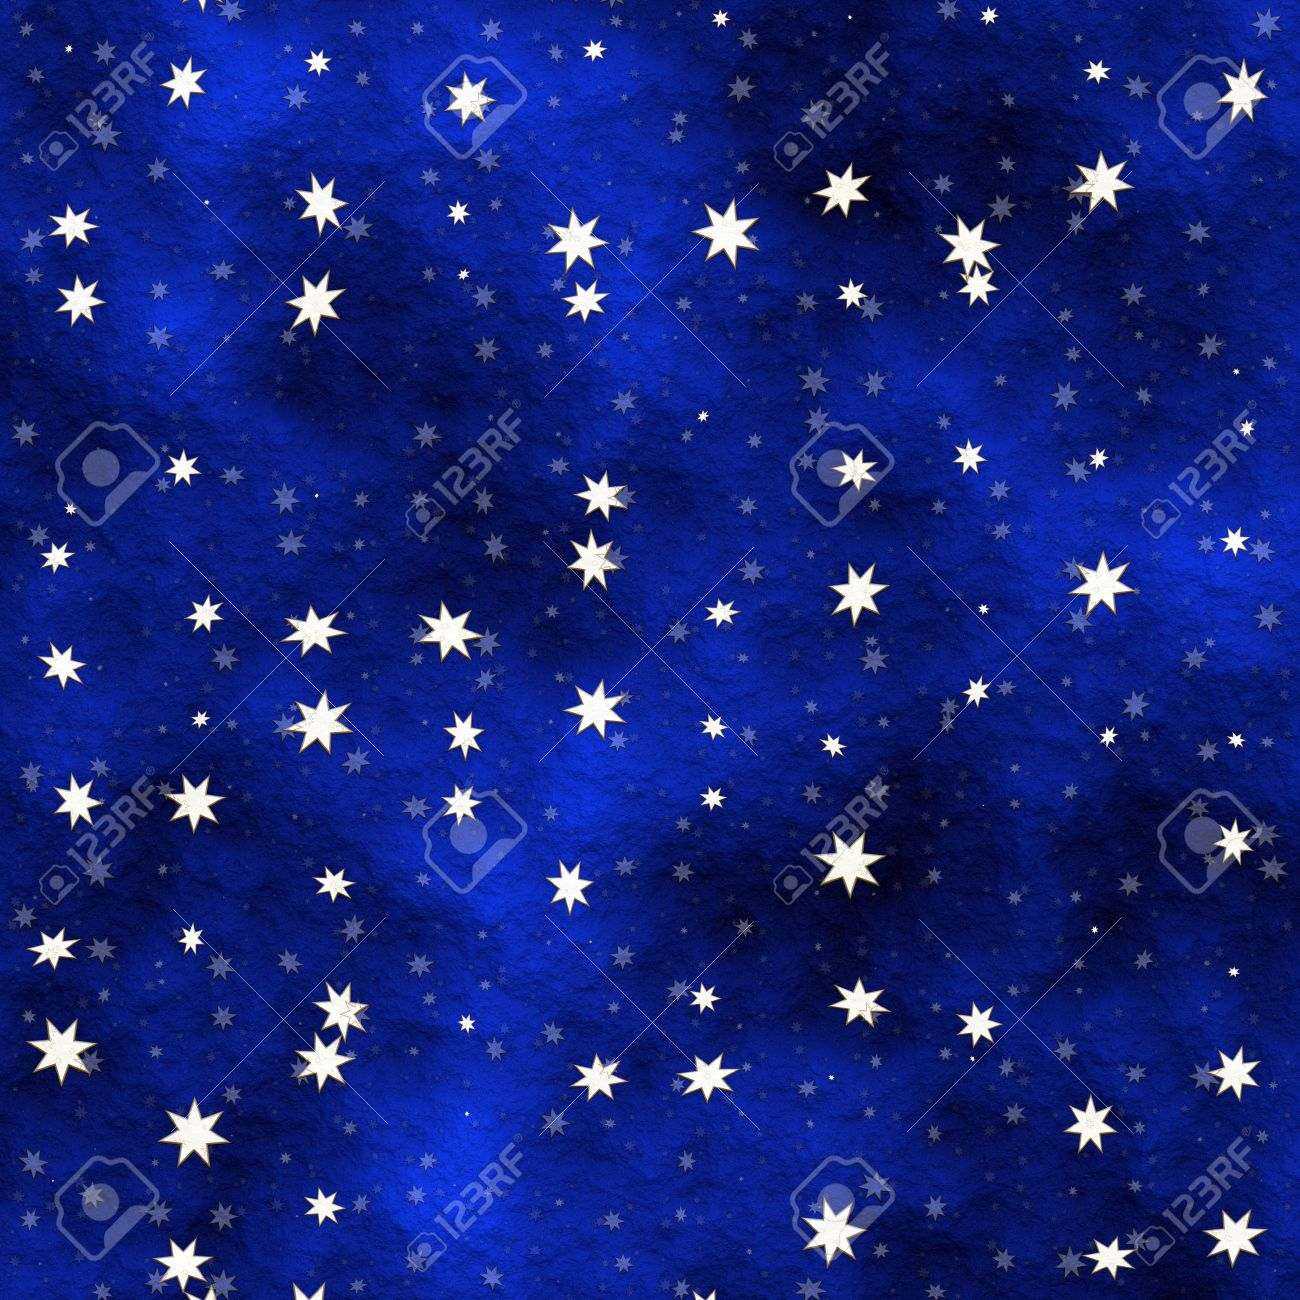 Uncategorized Star Ceiling Paint many stars scattered in a blue painted ceiling stock photo 7028751